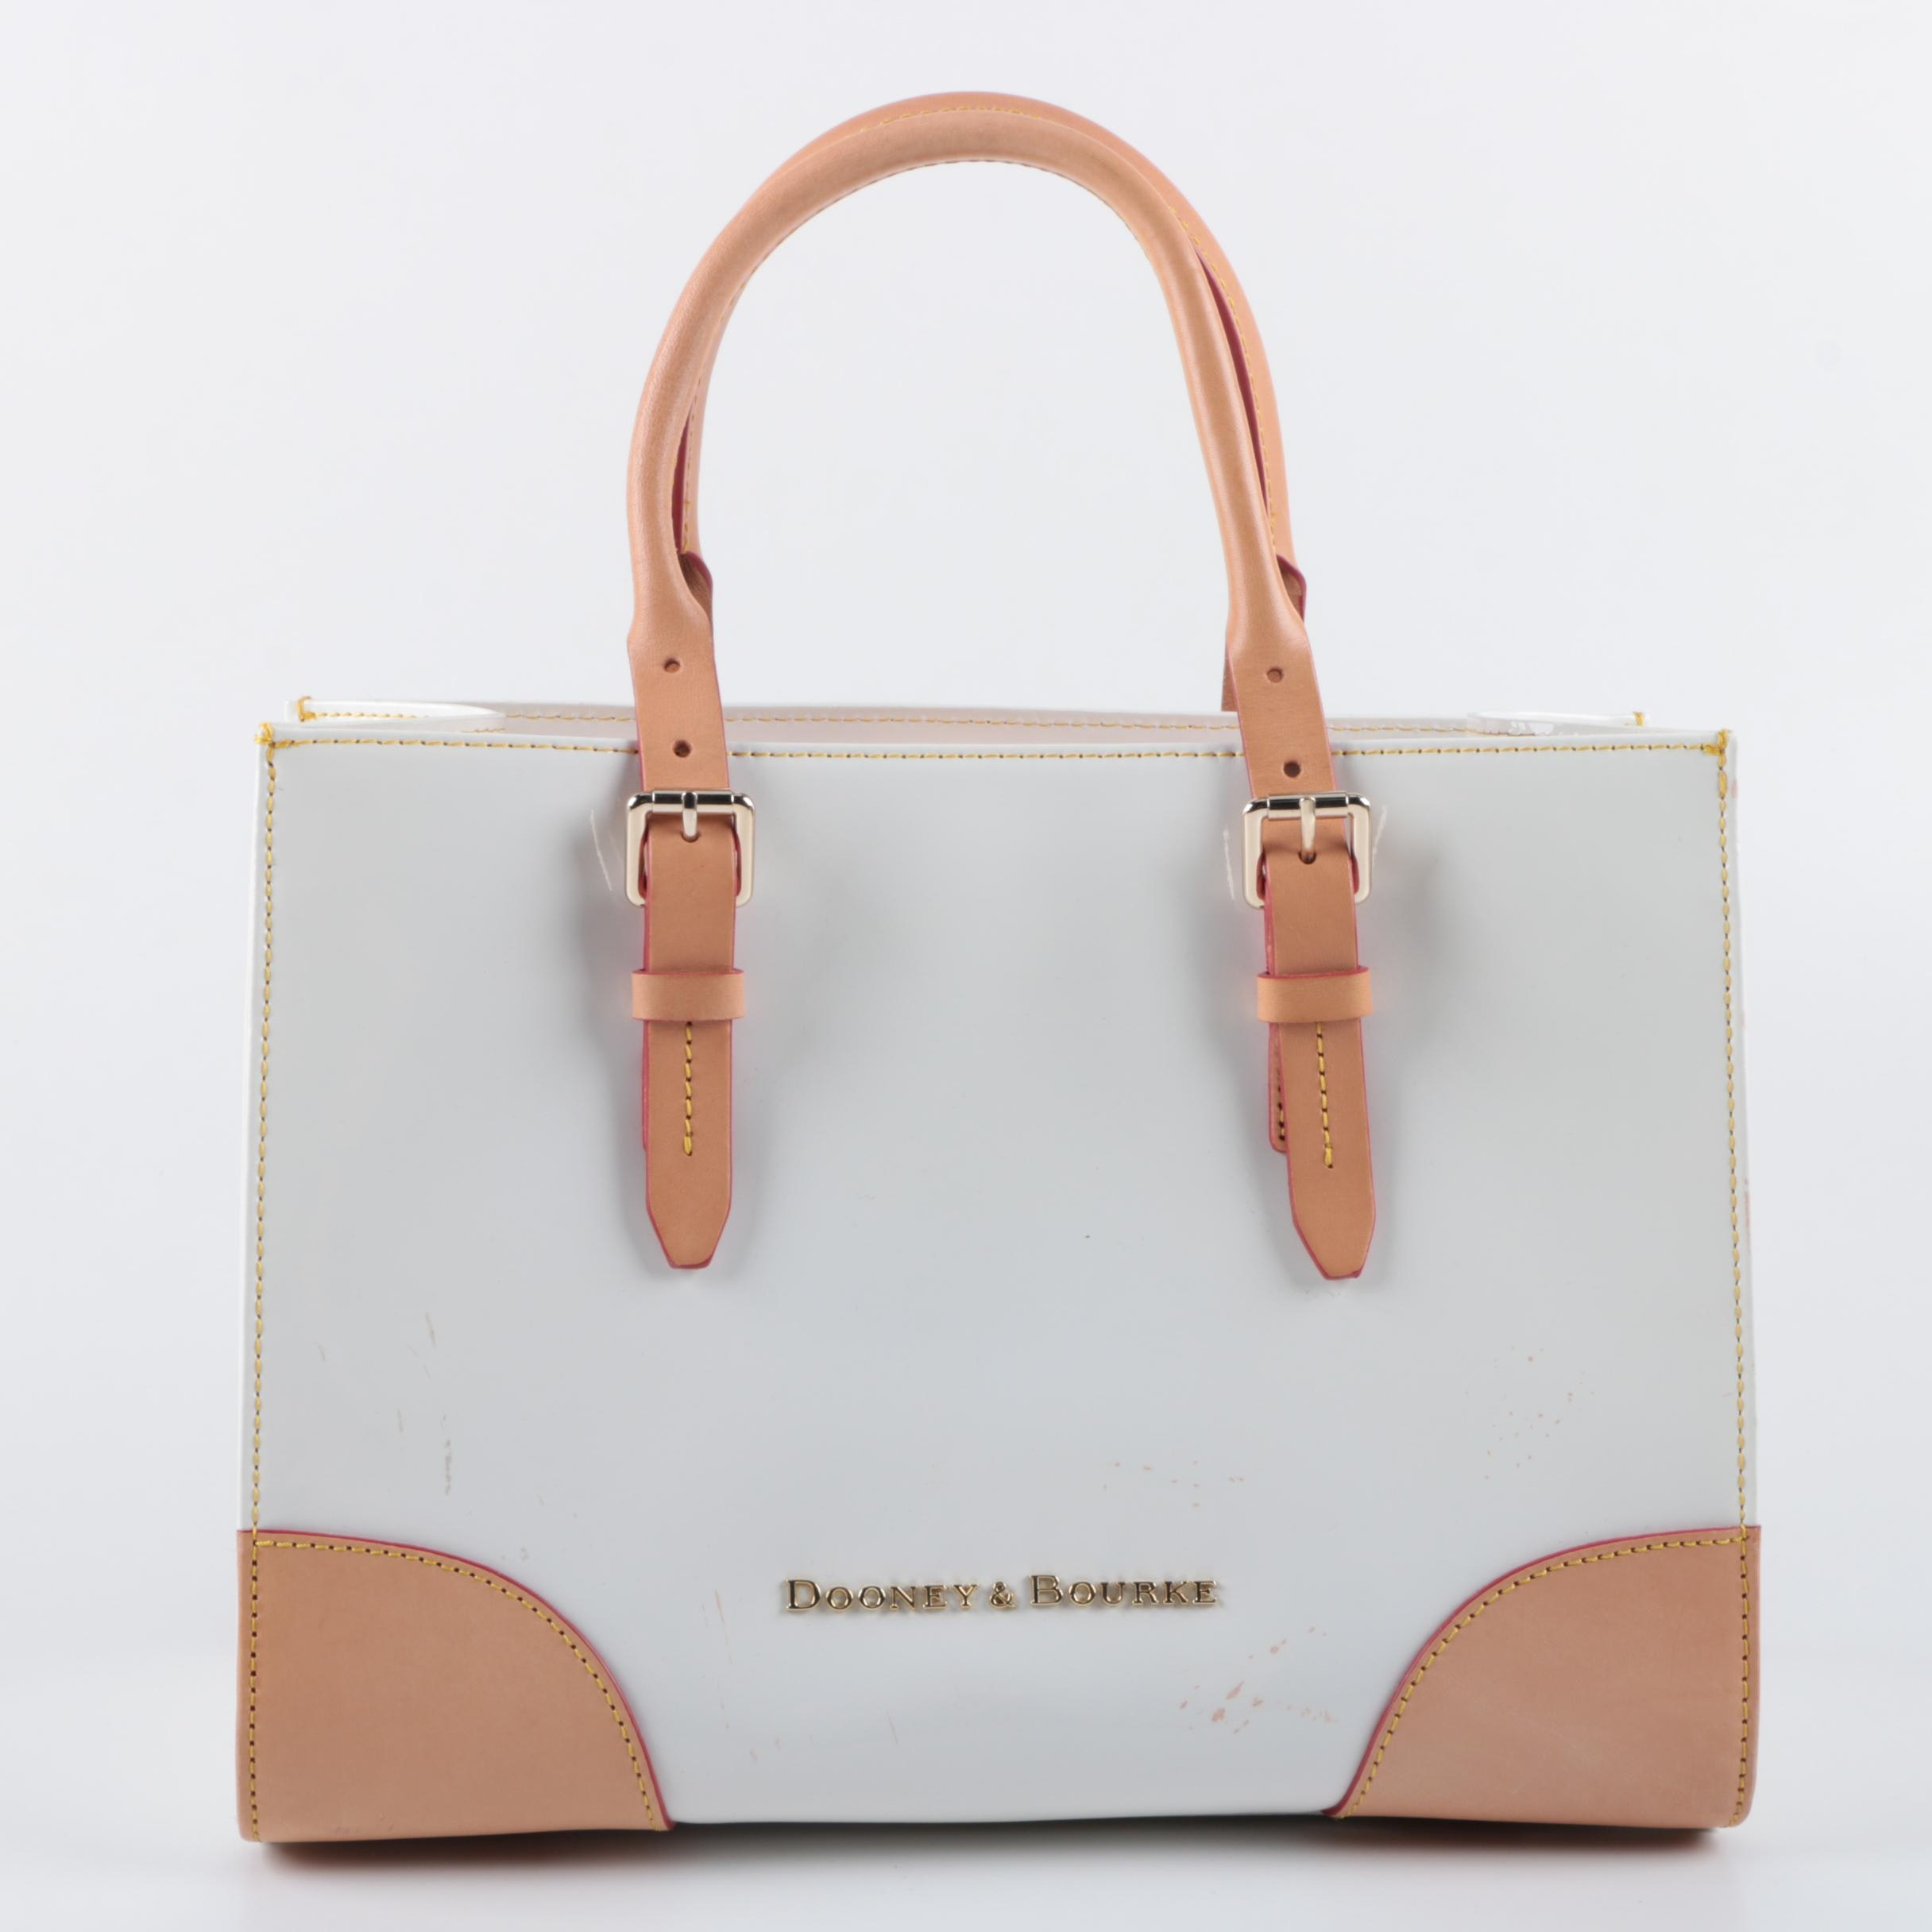 Dooney & Bourke White Patent Leather and Tan Leather Buckle Strap Tote